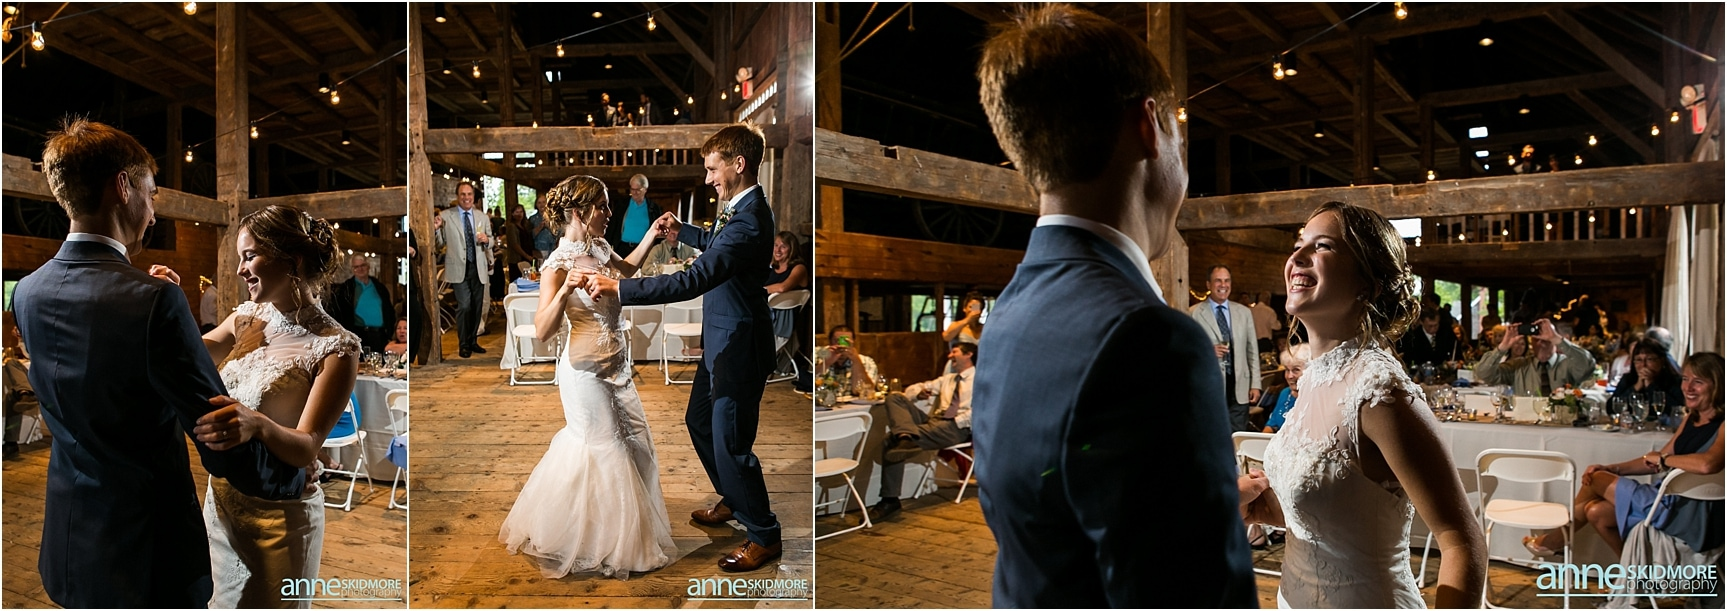 moody_mountain_farm_wedding__068